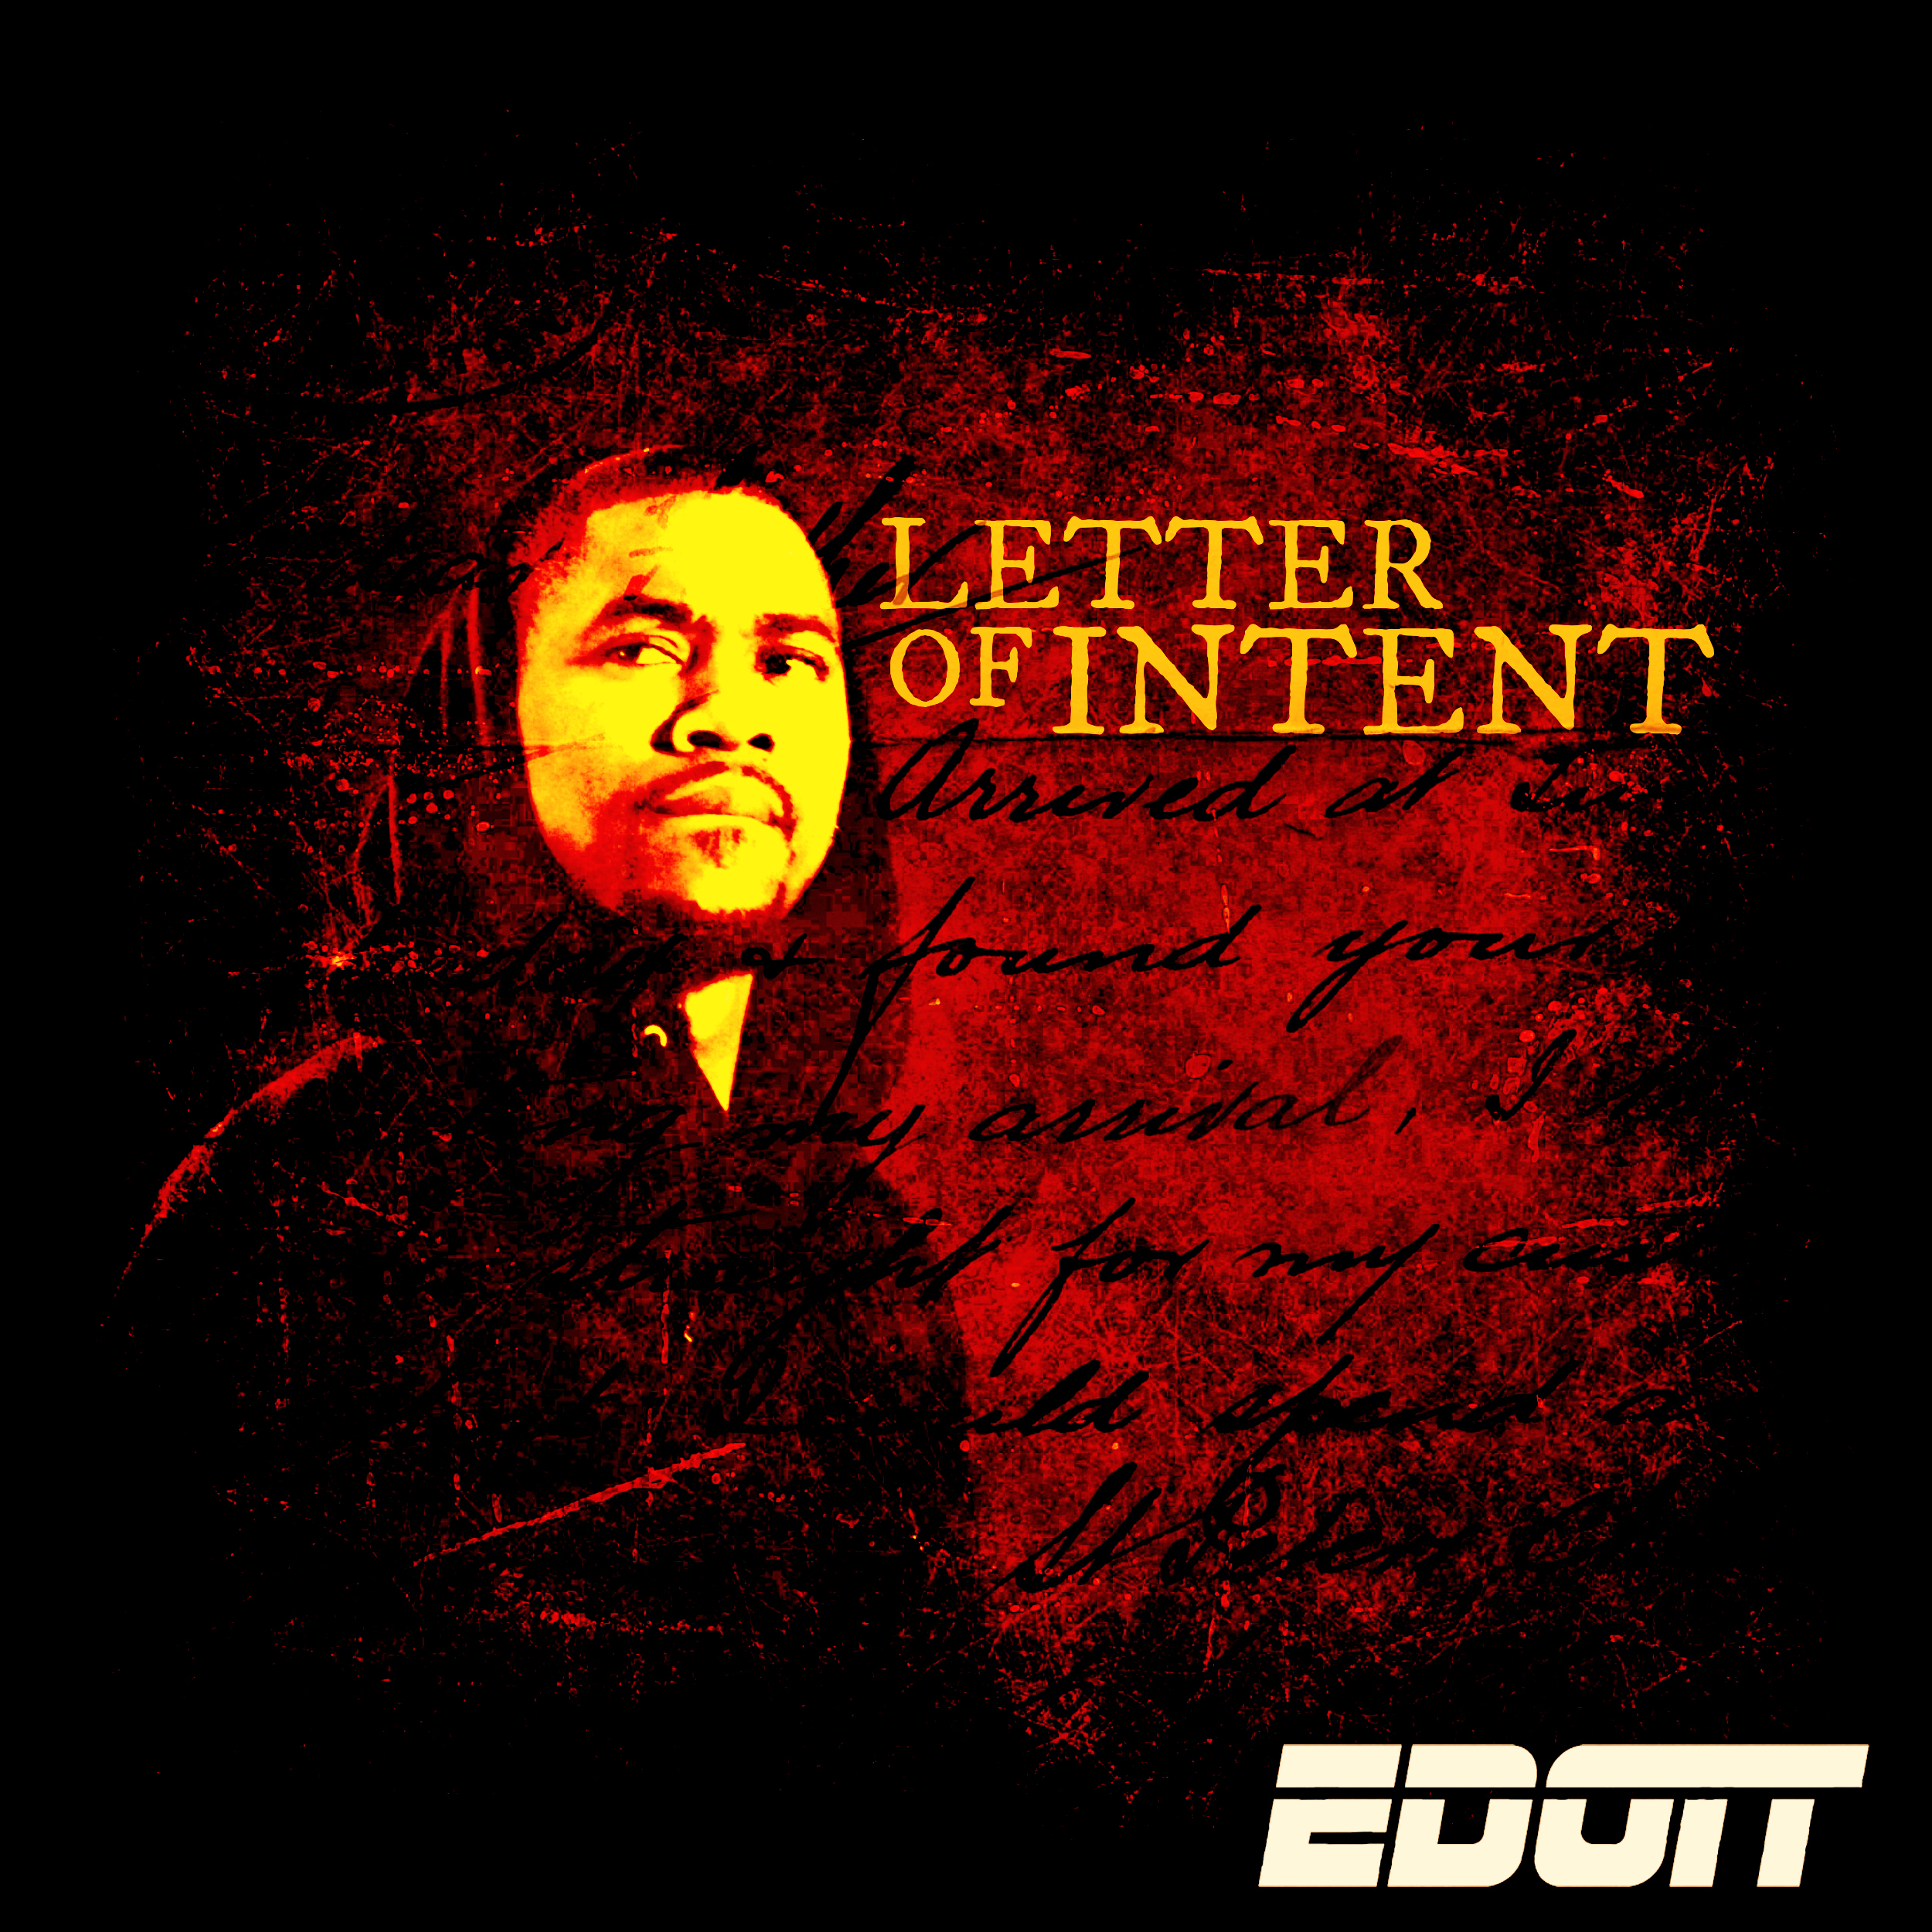 E Dott - Letter of Intent (Mixtape)